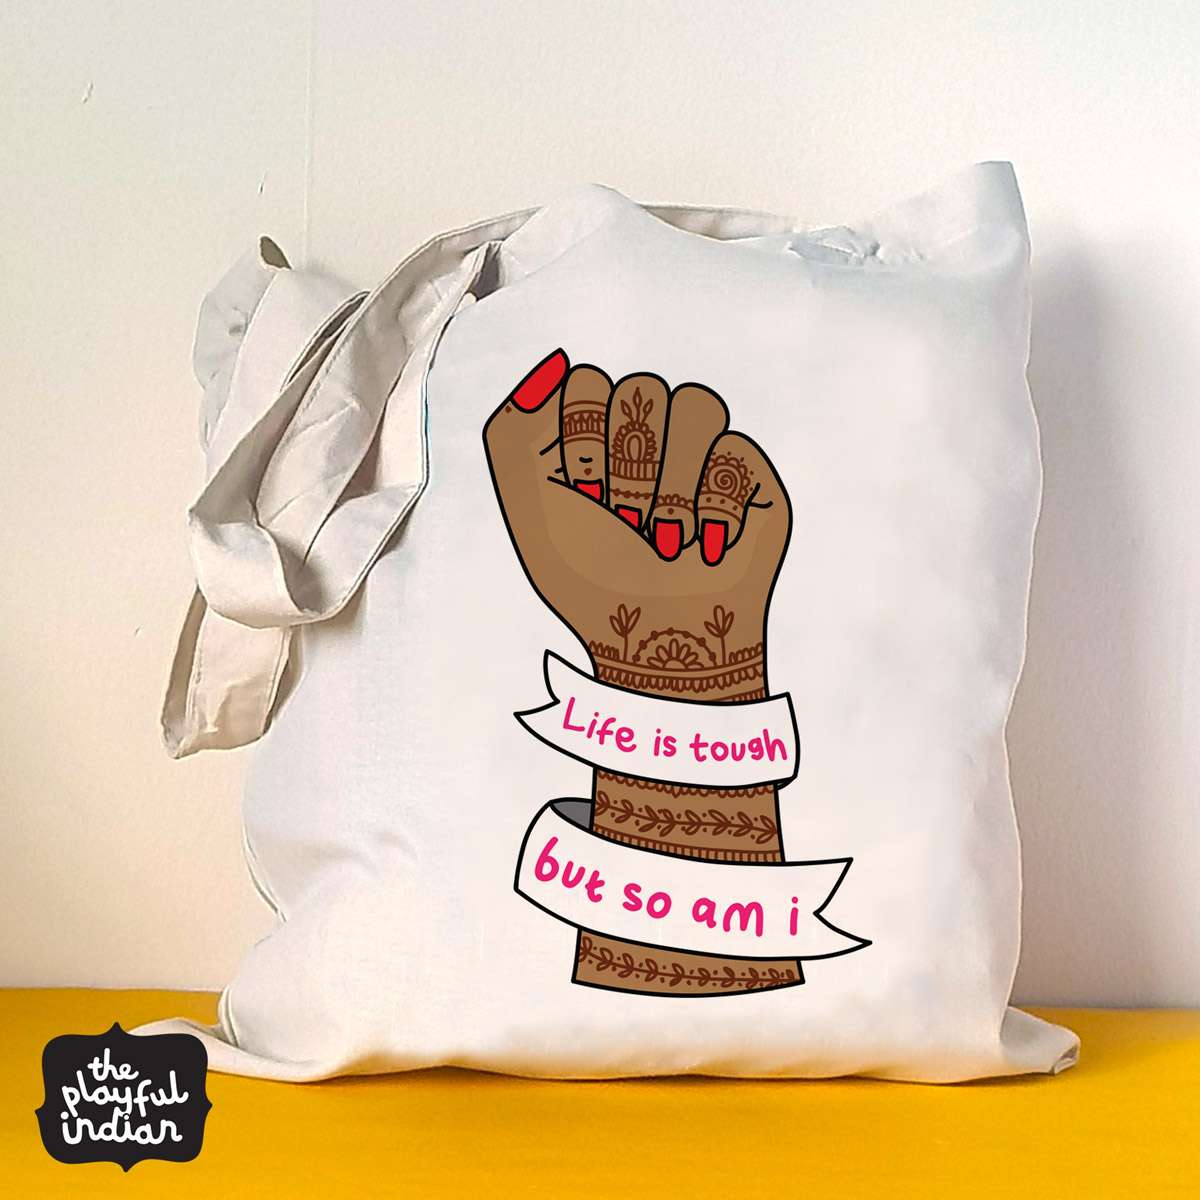 life is tough but so am i tote bag